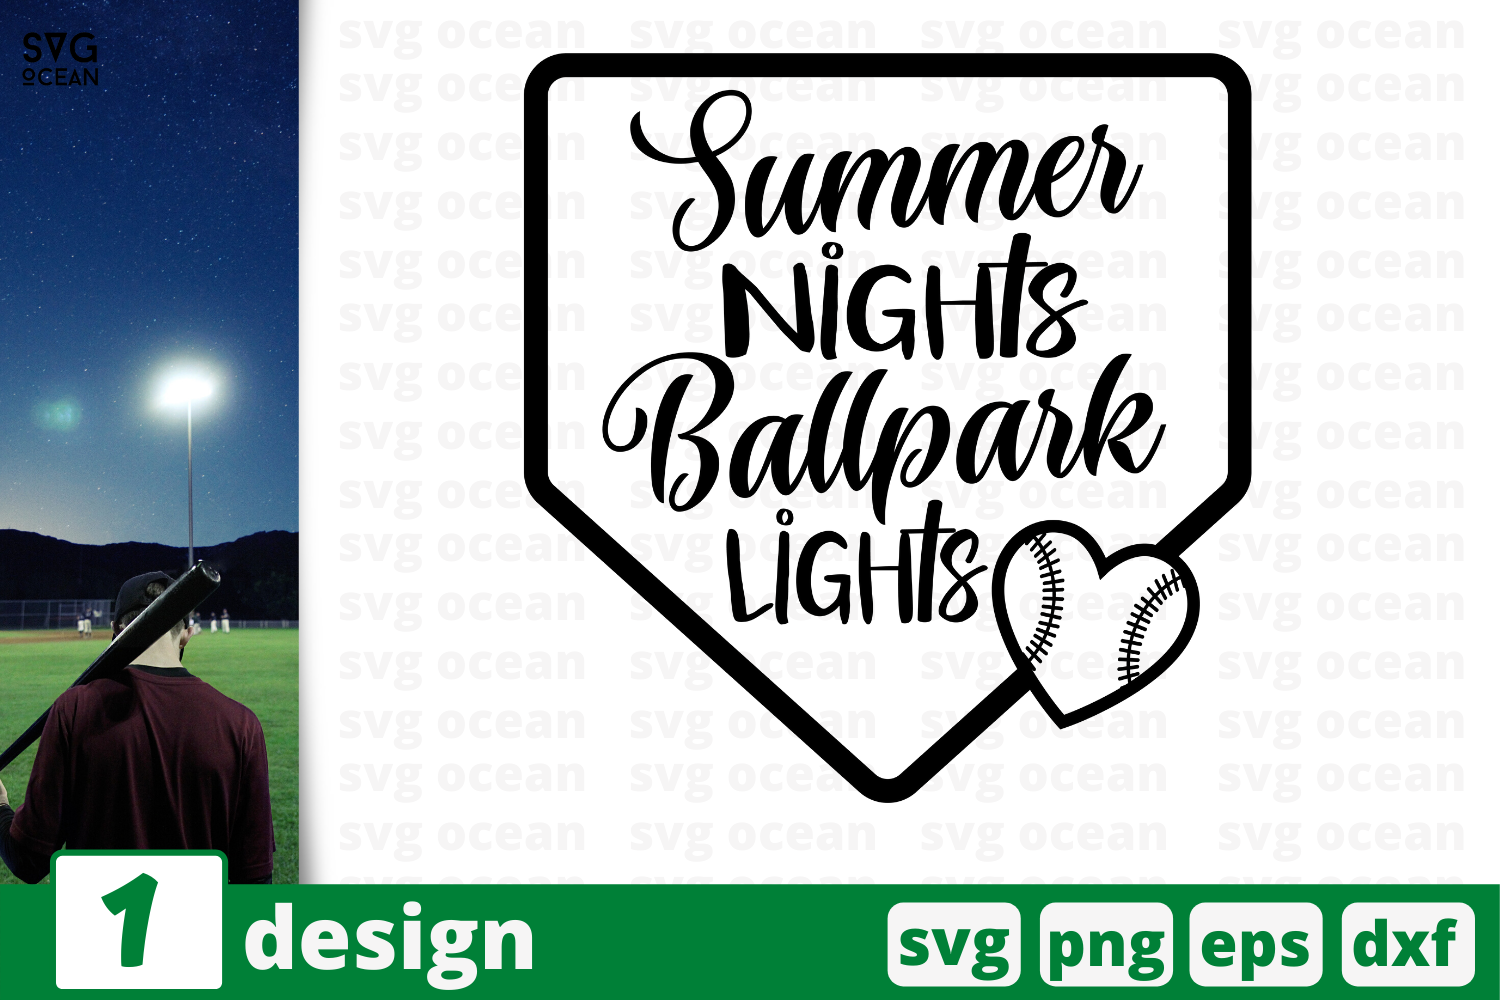 Download Free 1 Summer Night Ballpark Lights Graphic By Svgocean Creative for Cricut Explore, Silhouette and other cutting machines.